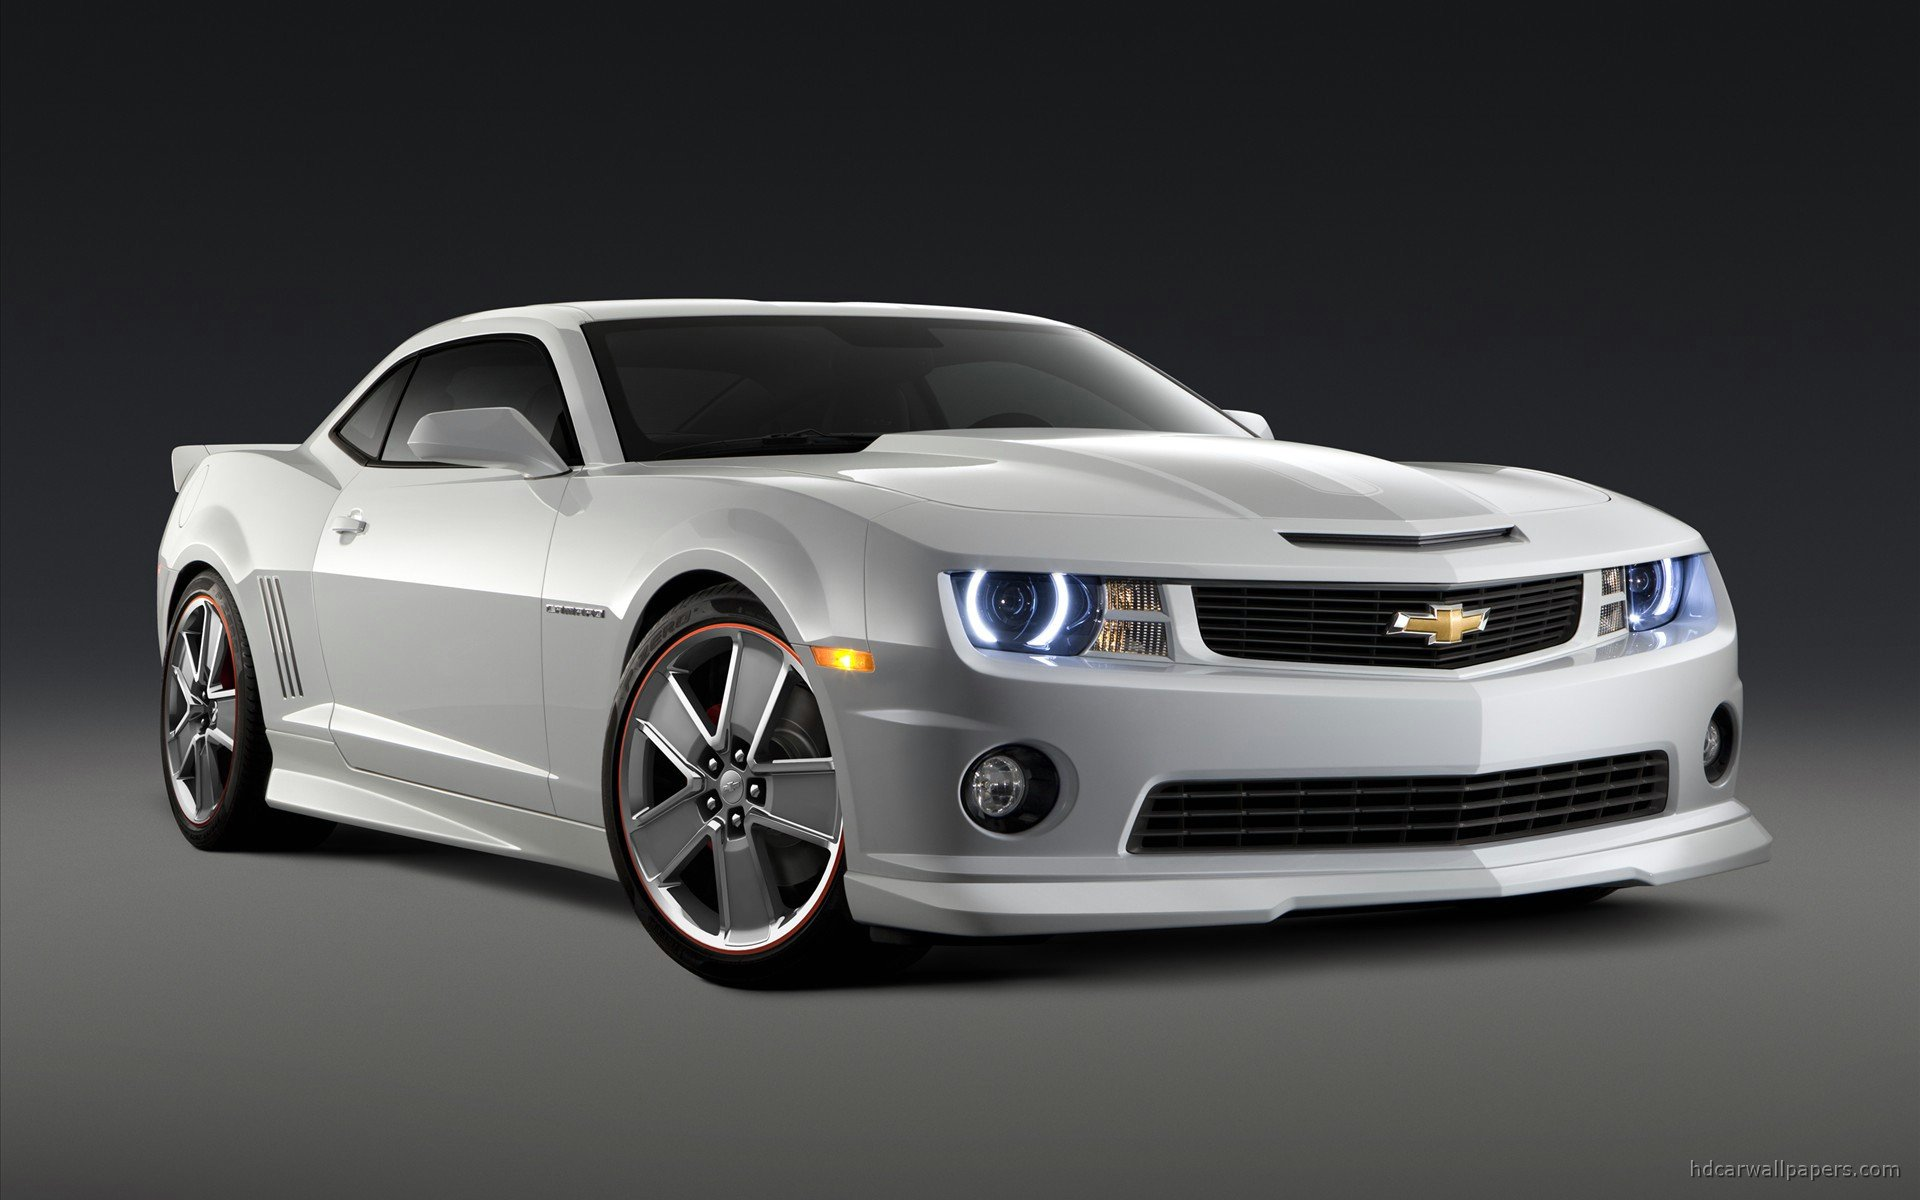 chevrolet camaro wallpaper hd 10   Taringa 1920x1200